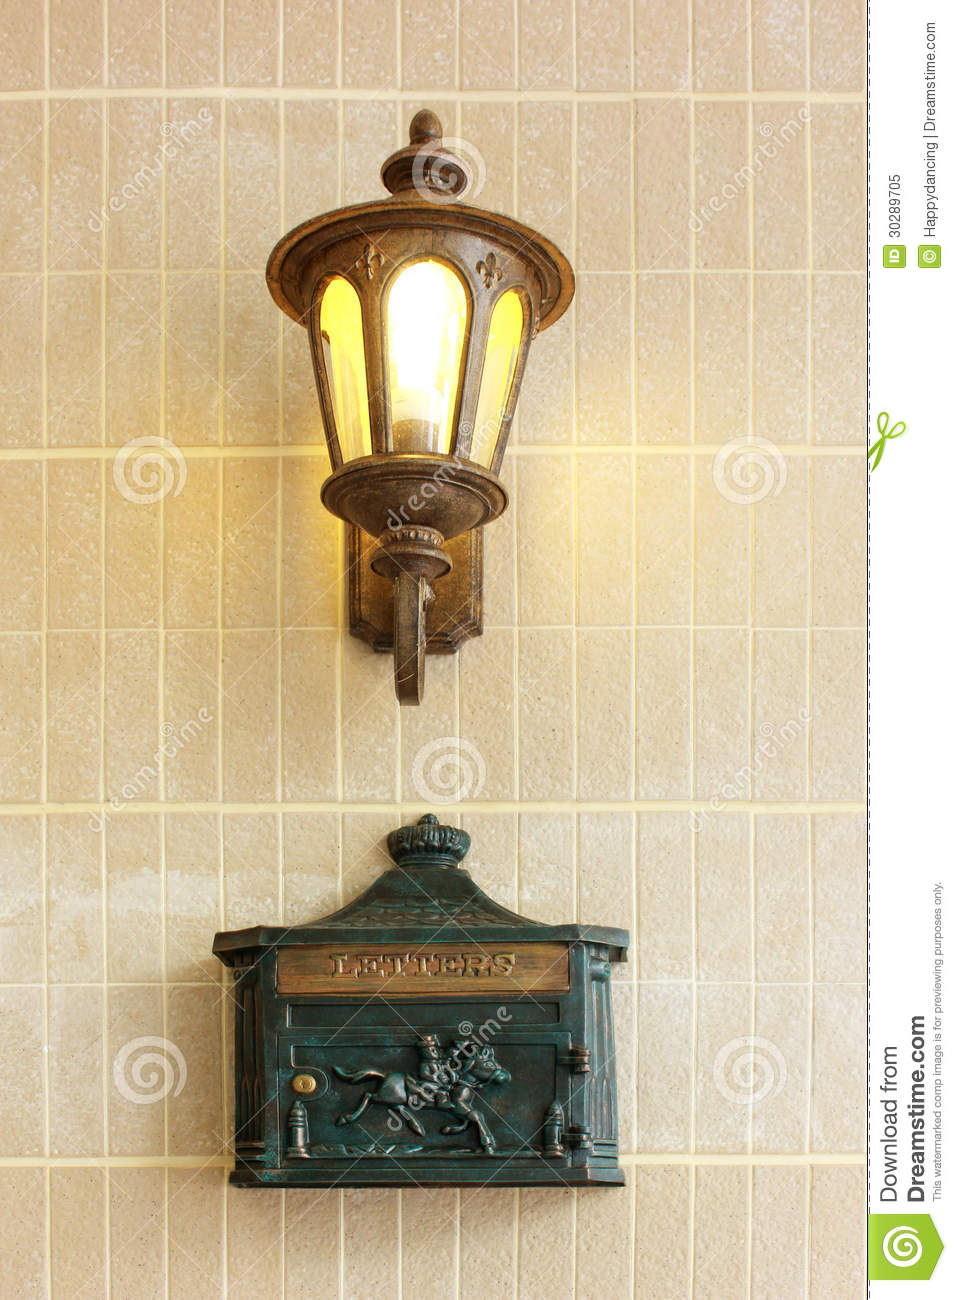 vintage street lamp with letter box